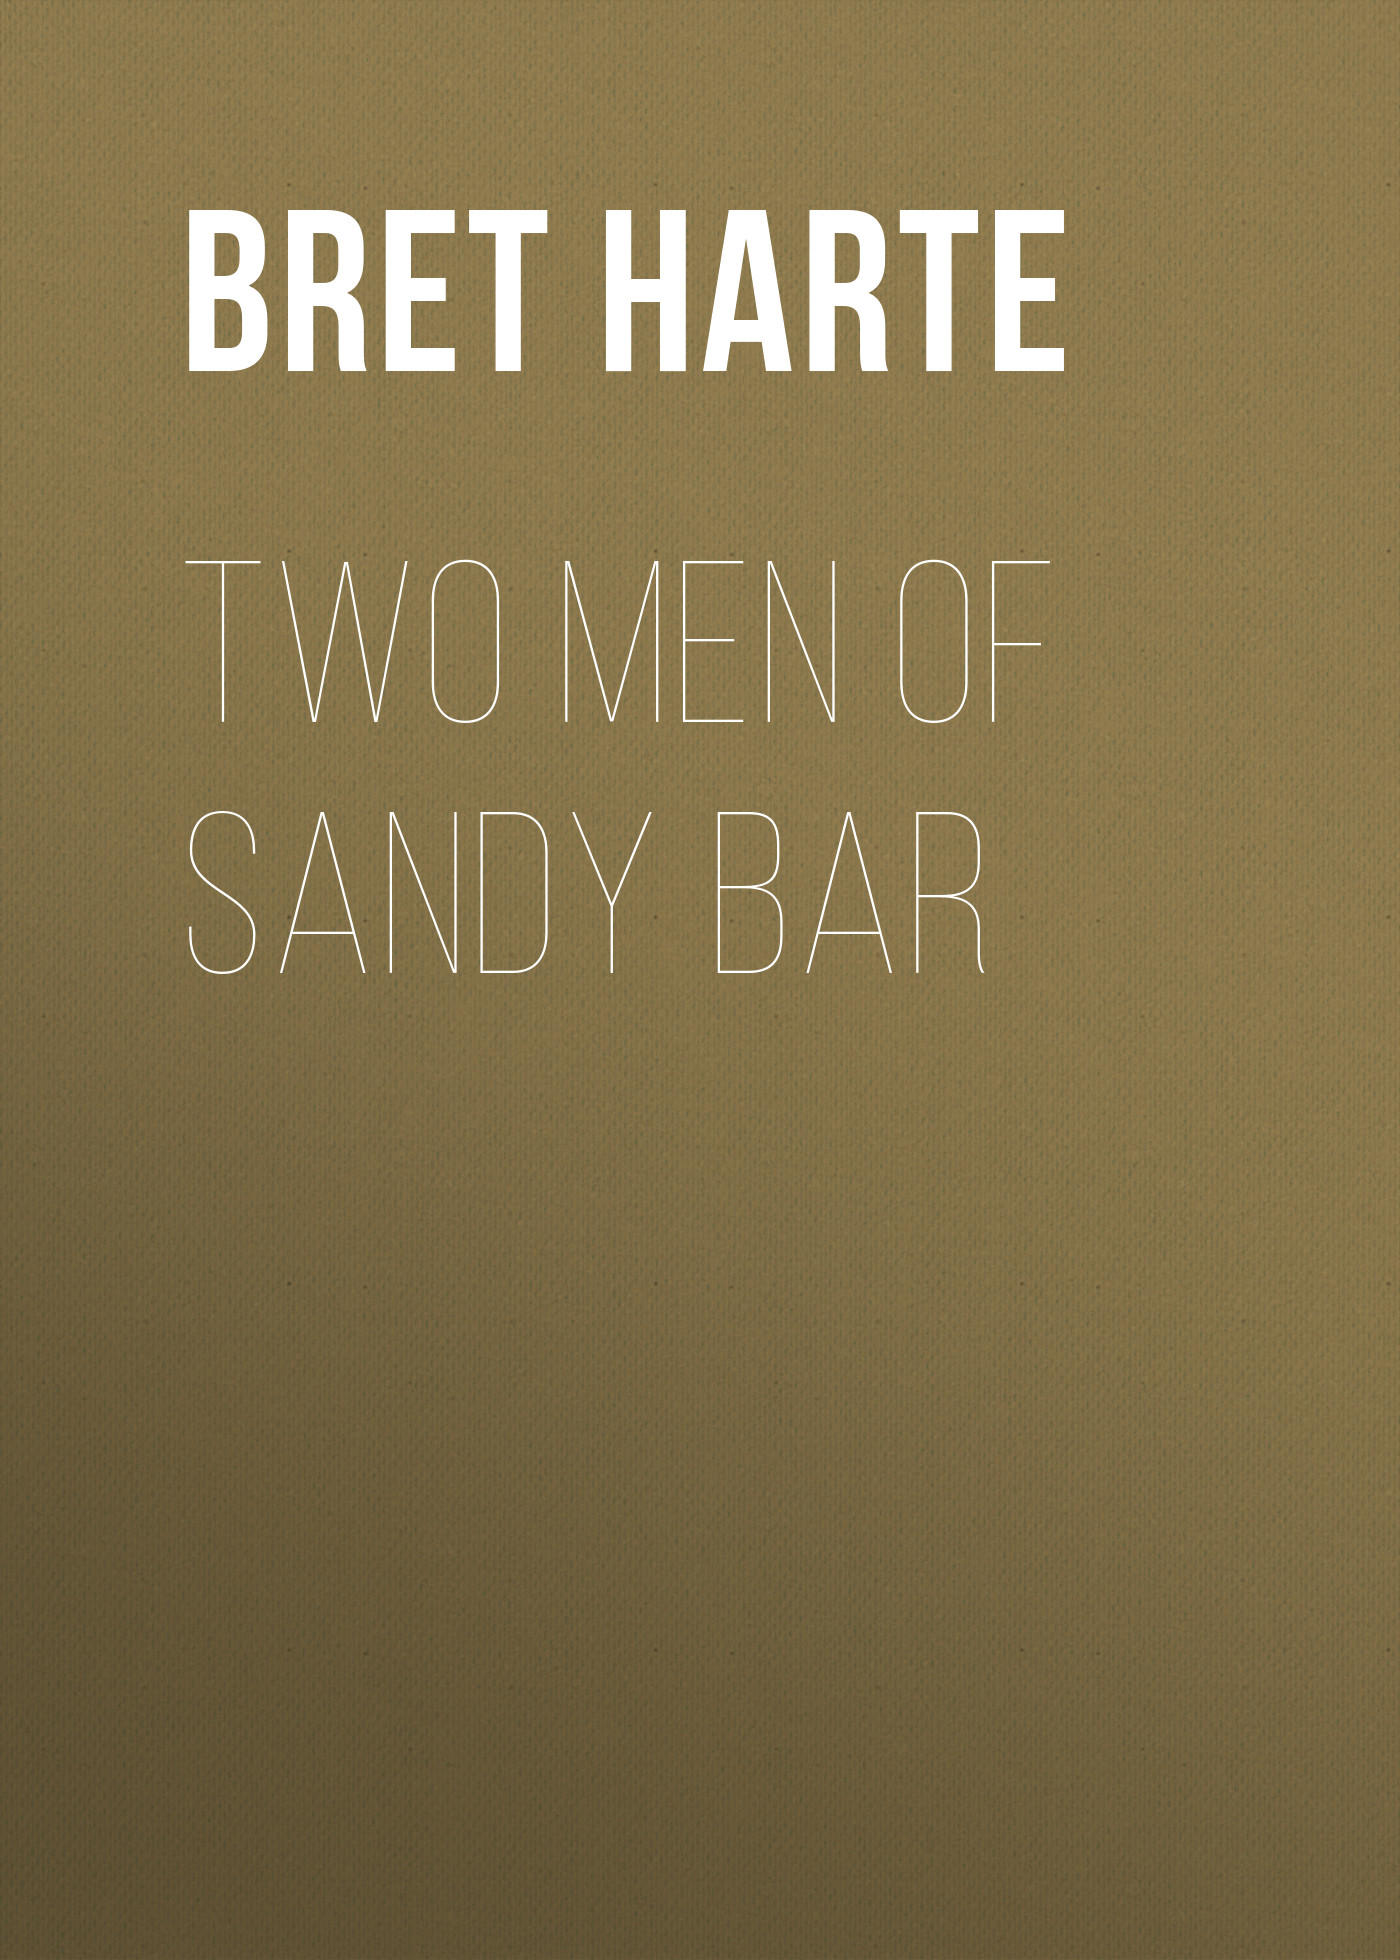 Bret Harte Two Men of Sandy Bar цена и фото